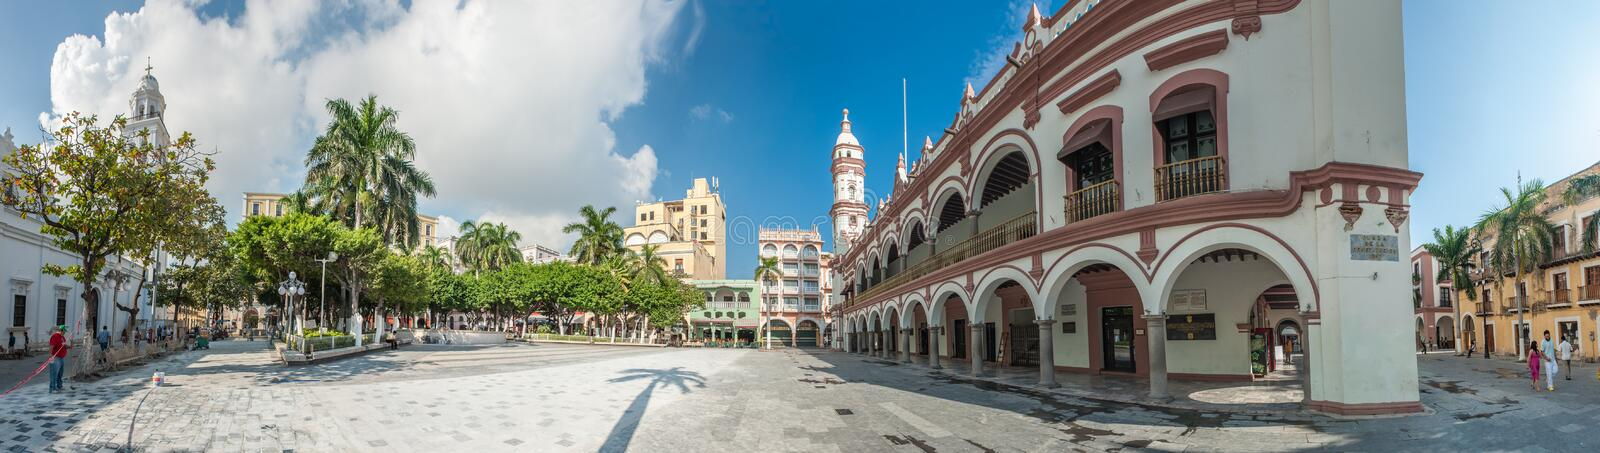 Zocalo or Plaza de Armas, the main square of Veracruz, Mexico. Image of Zocalo or Plaza de Armas, the main square of Veracruz, Mexico stock photography